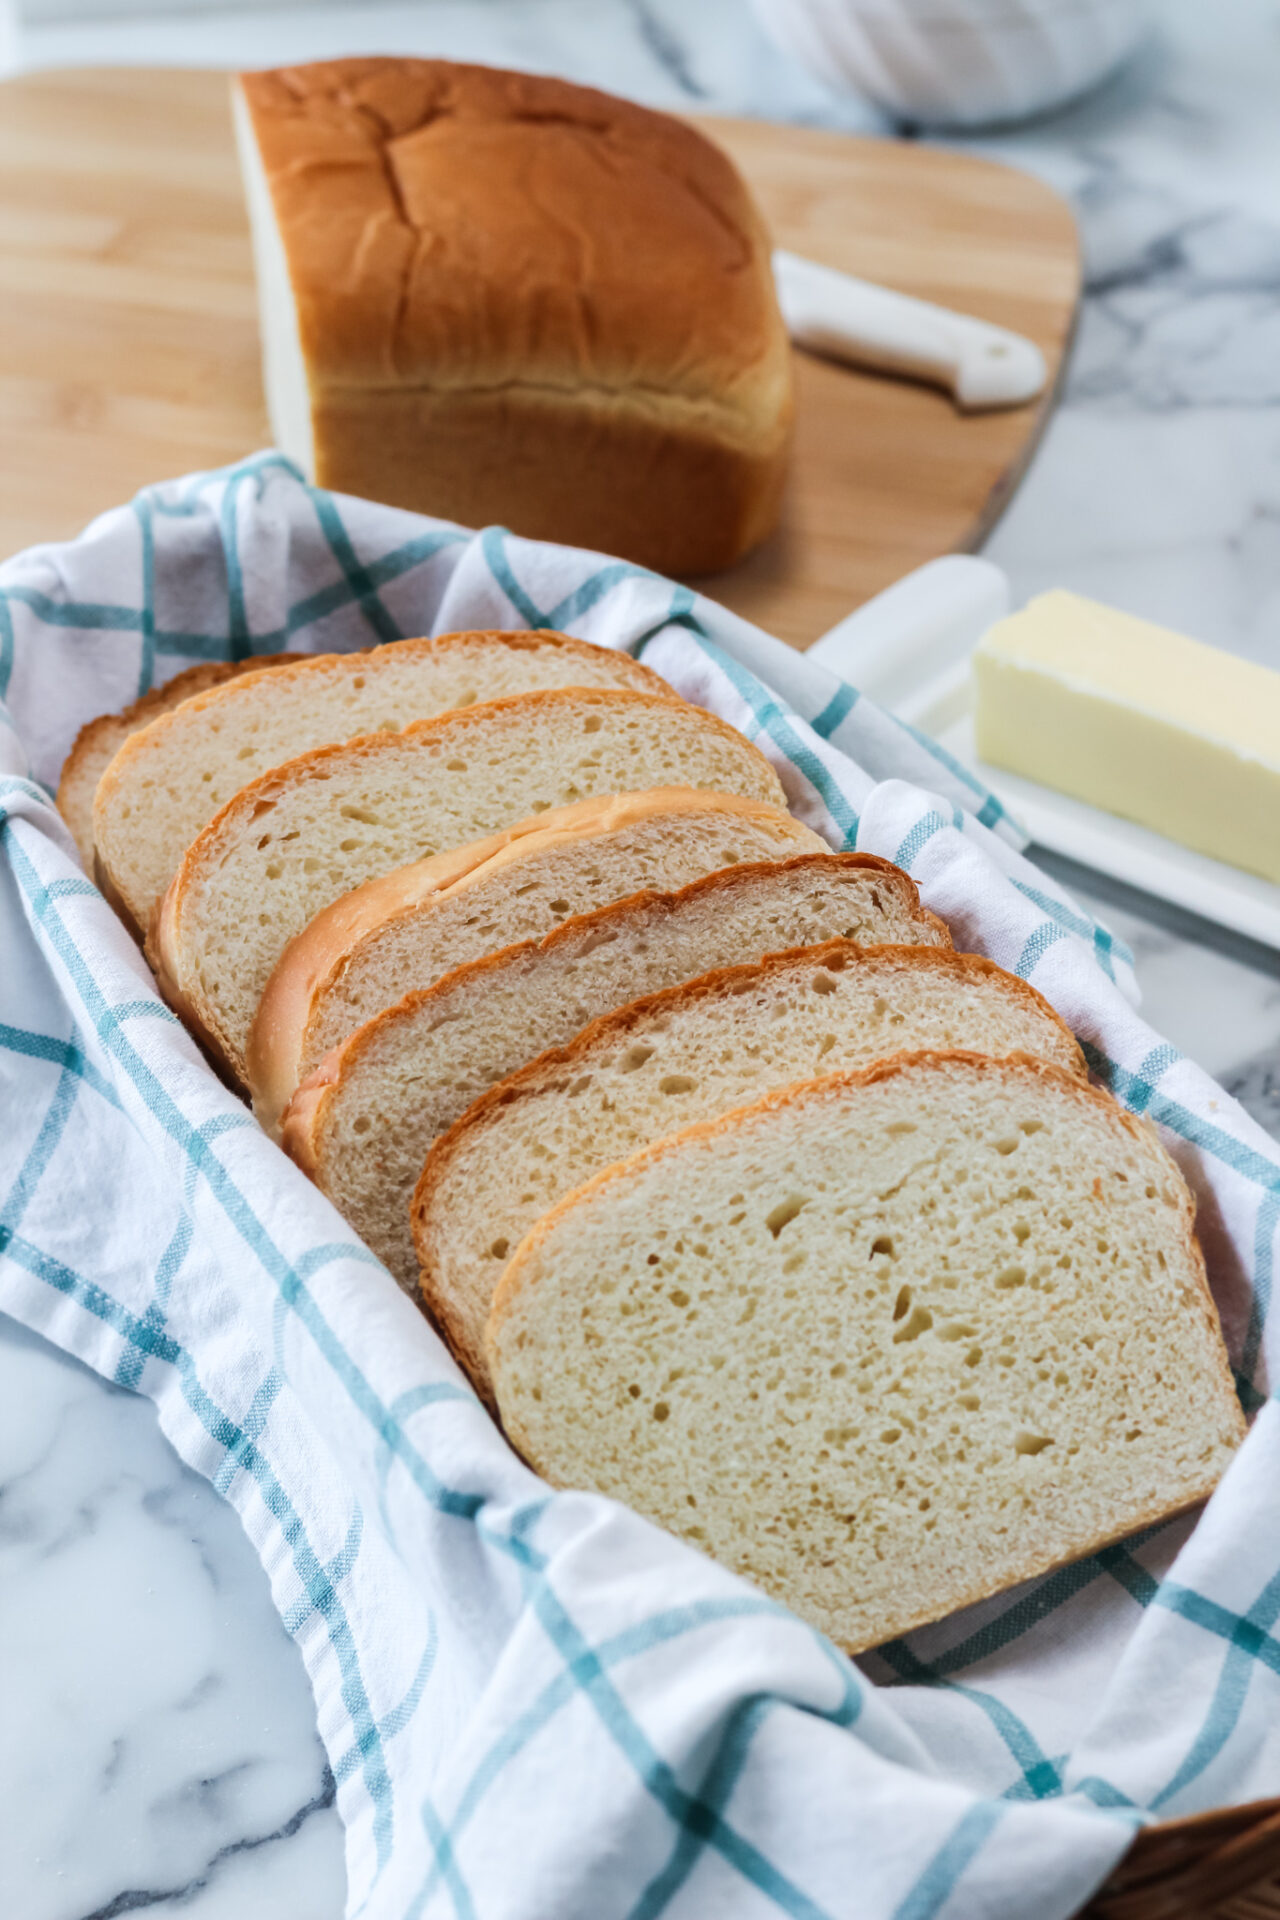 Homemade Yeast Bread - Confessions of Parenting